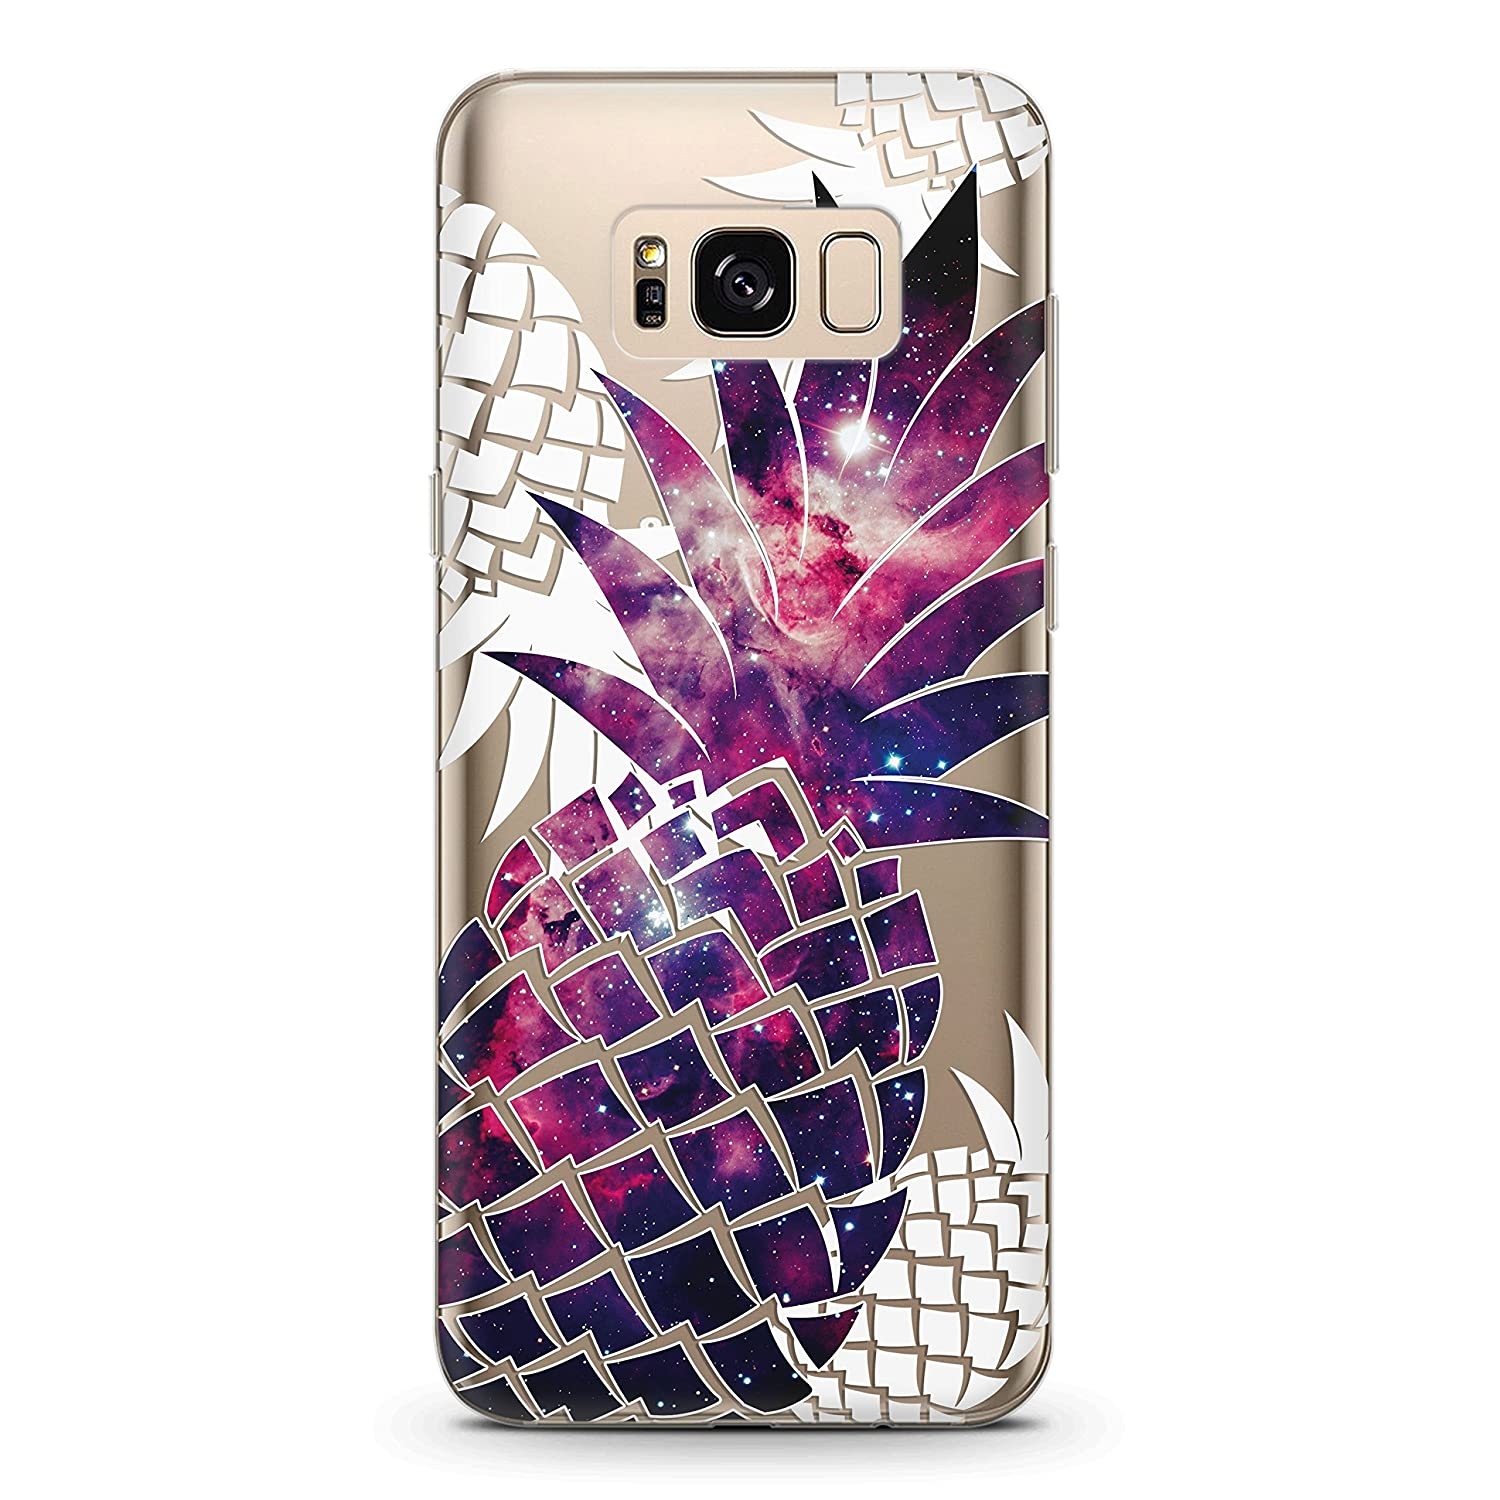 Wonder Wild Silicone Samsung Galaxy S8 S9 Plus 7 Edge Note 8 A3 A5 A7 A8 Clear Case Cute Fruit Cover 2017 2018 Phone Watercolor Purple Pineapple Print Funny Design Cool Tropical Plant Floral Vintage